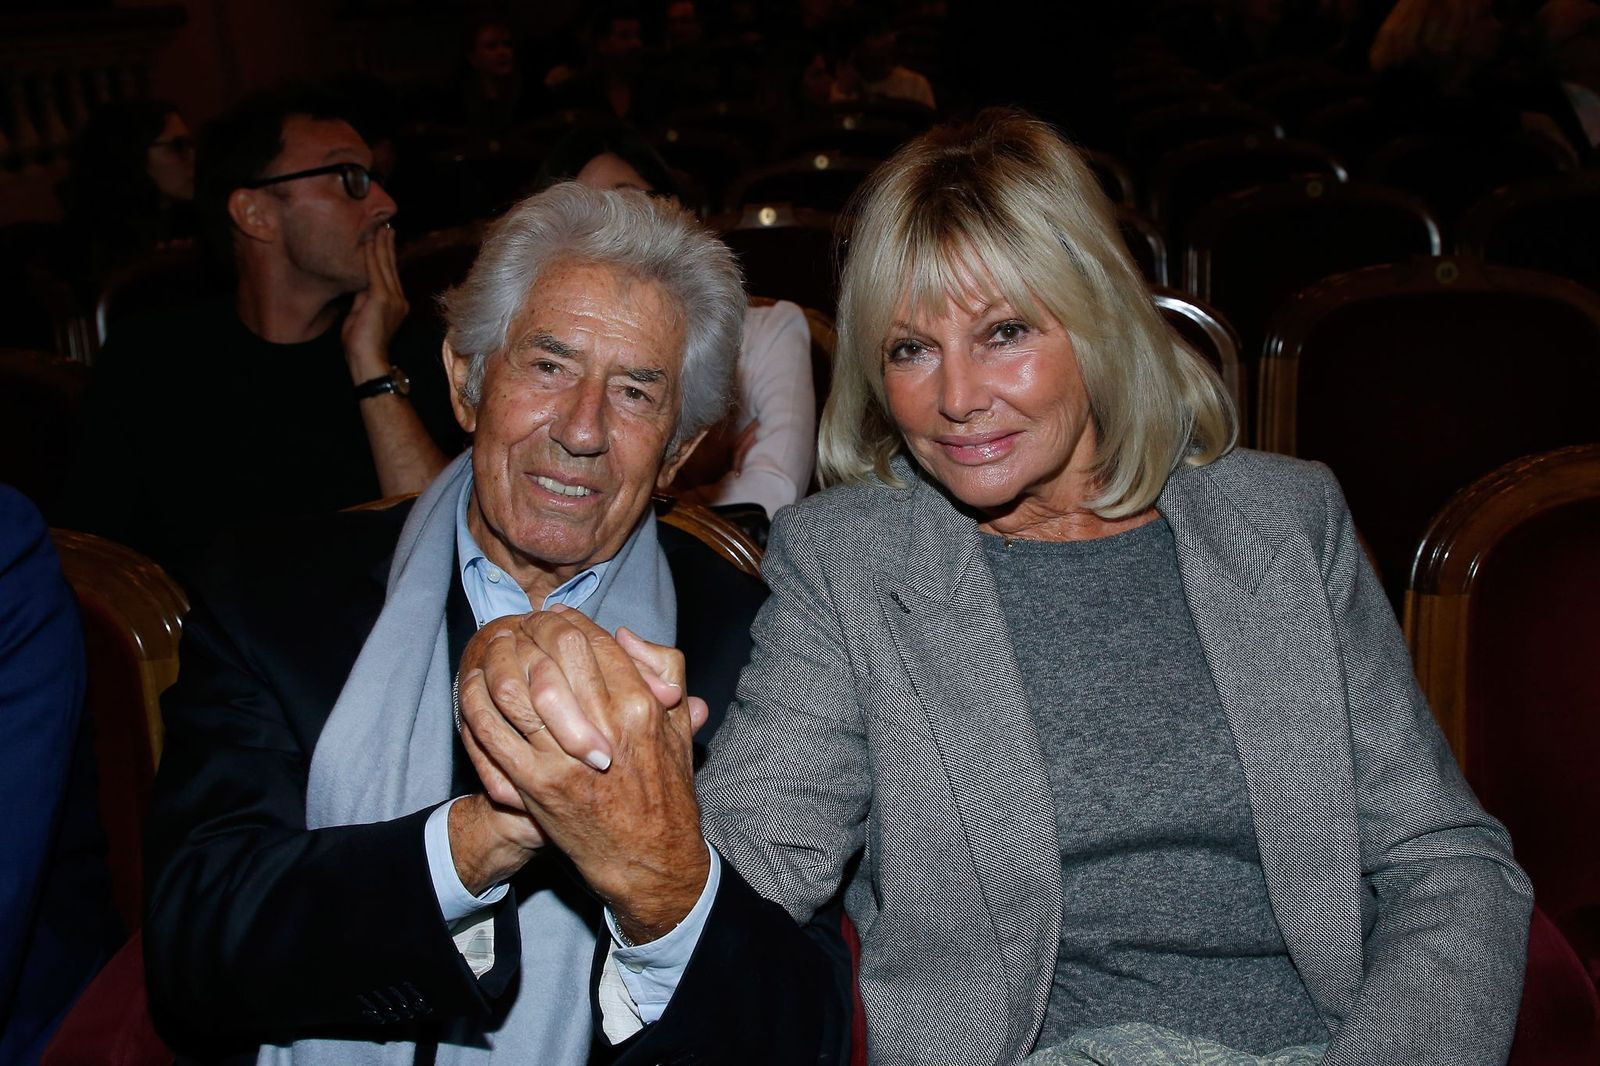 Le journaliste Philippe Gildas et sa compagne Maryse | Photo : Getty Images.